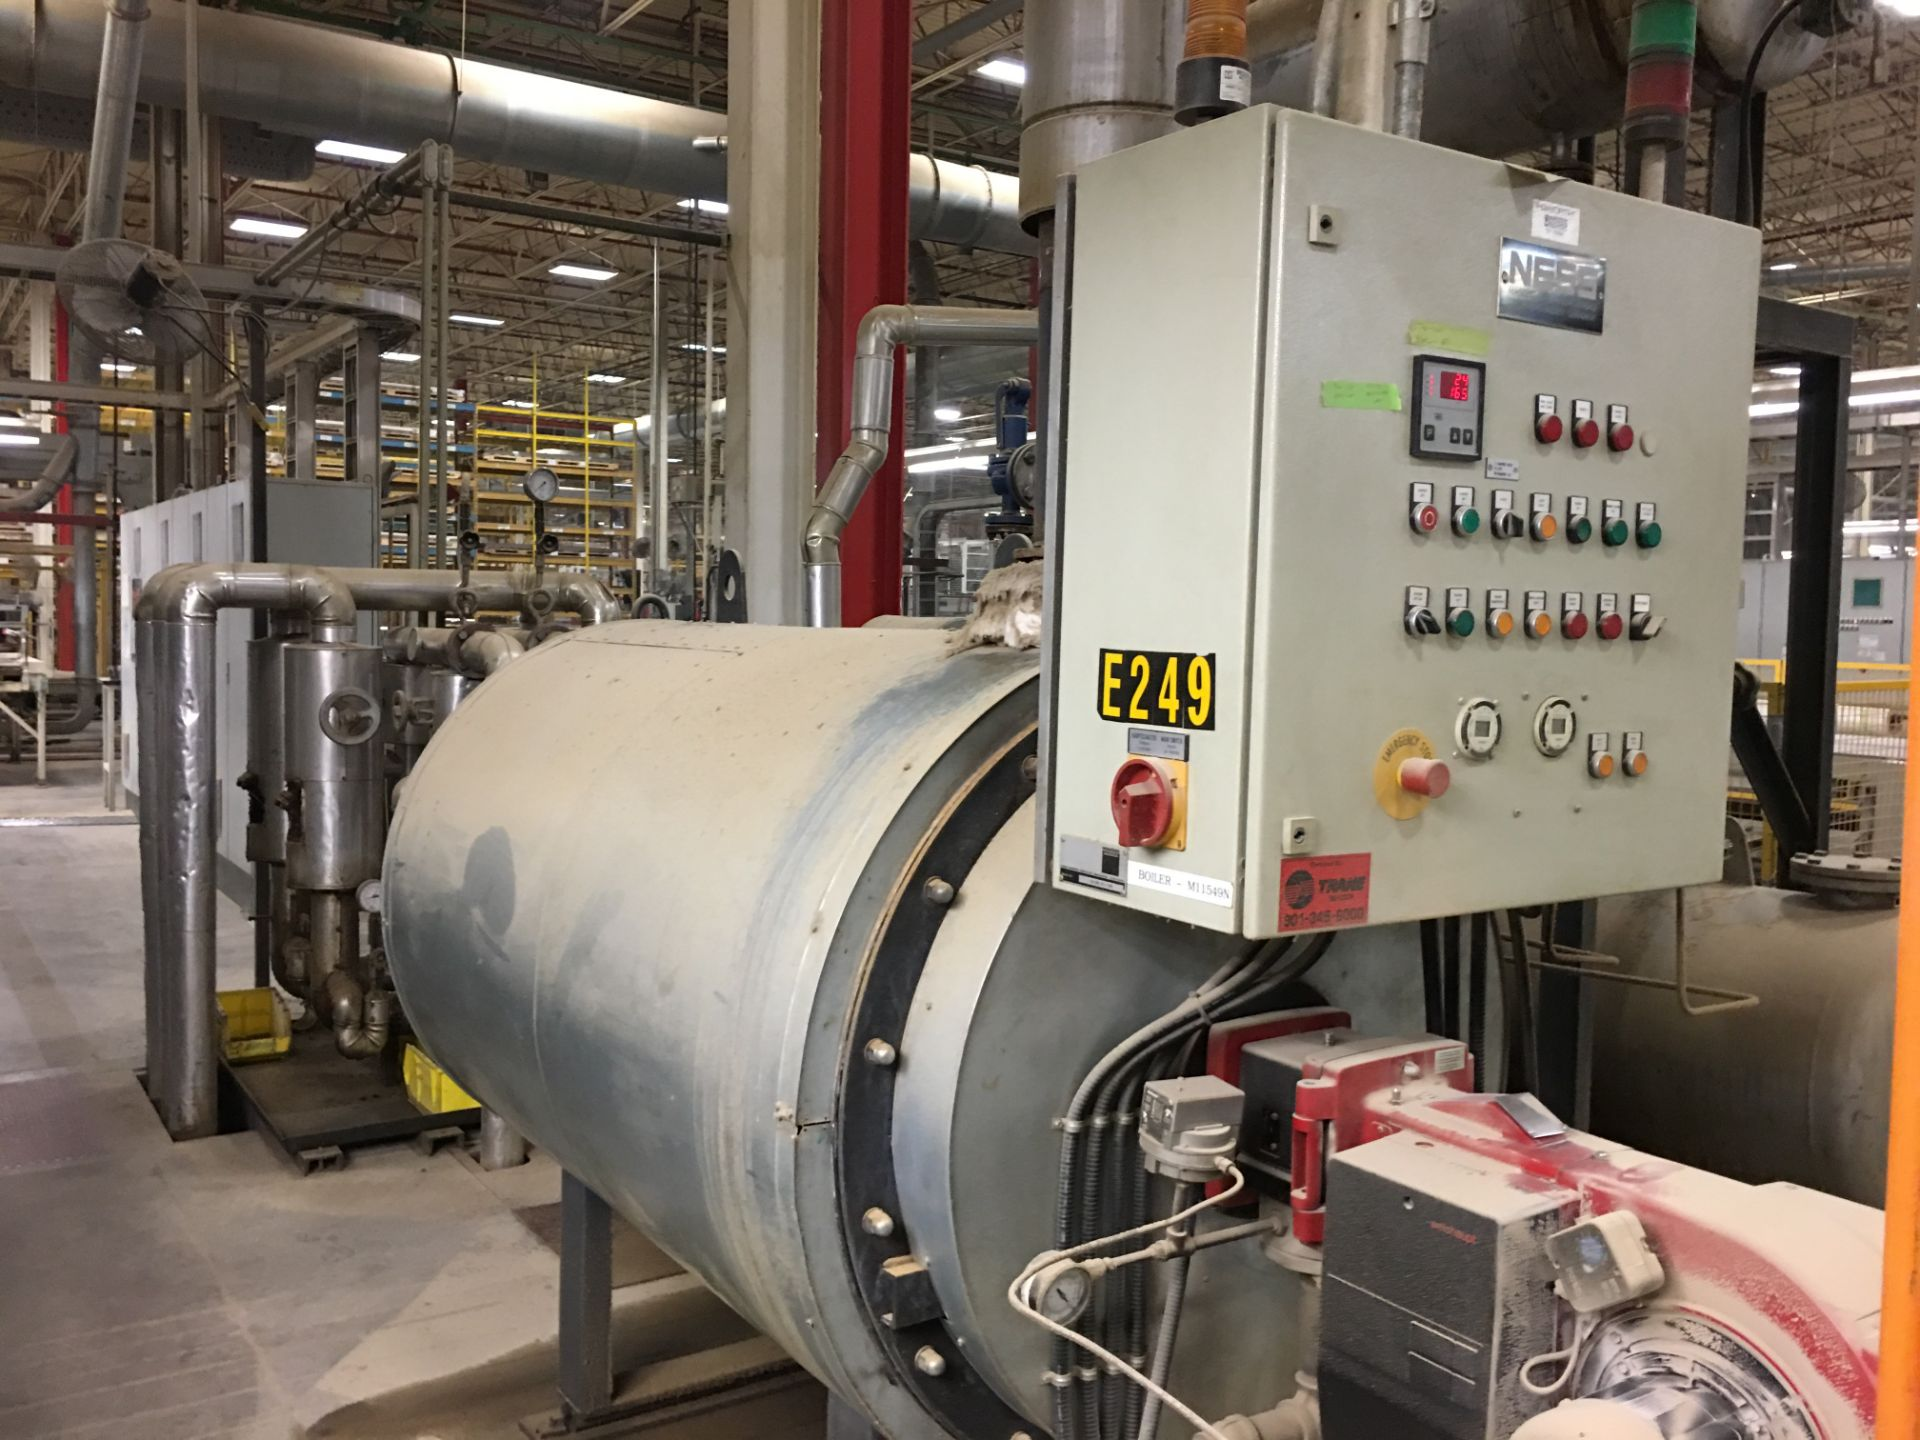 NESS NATURAL GAS OIL BOILER WITH CONTROLS - Image 2 of 8